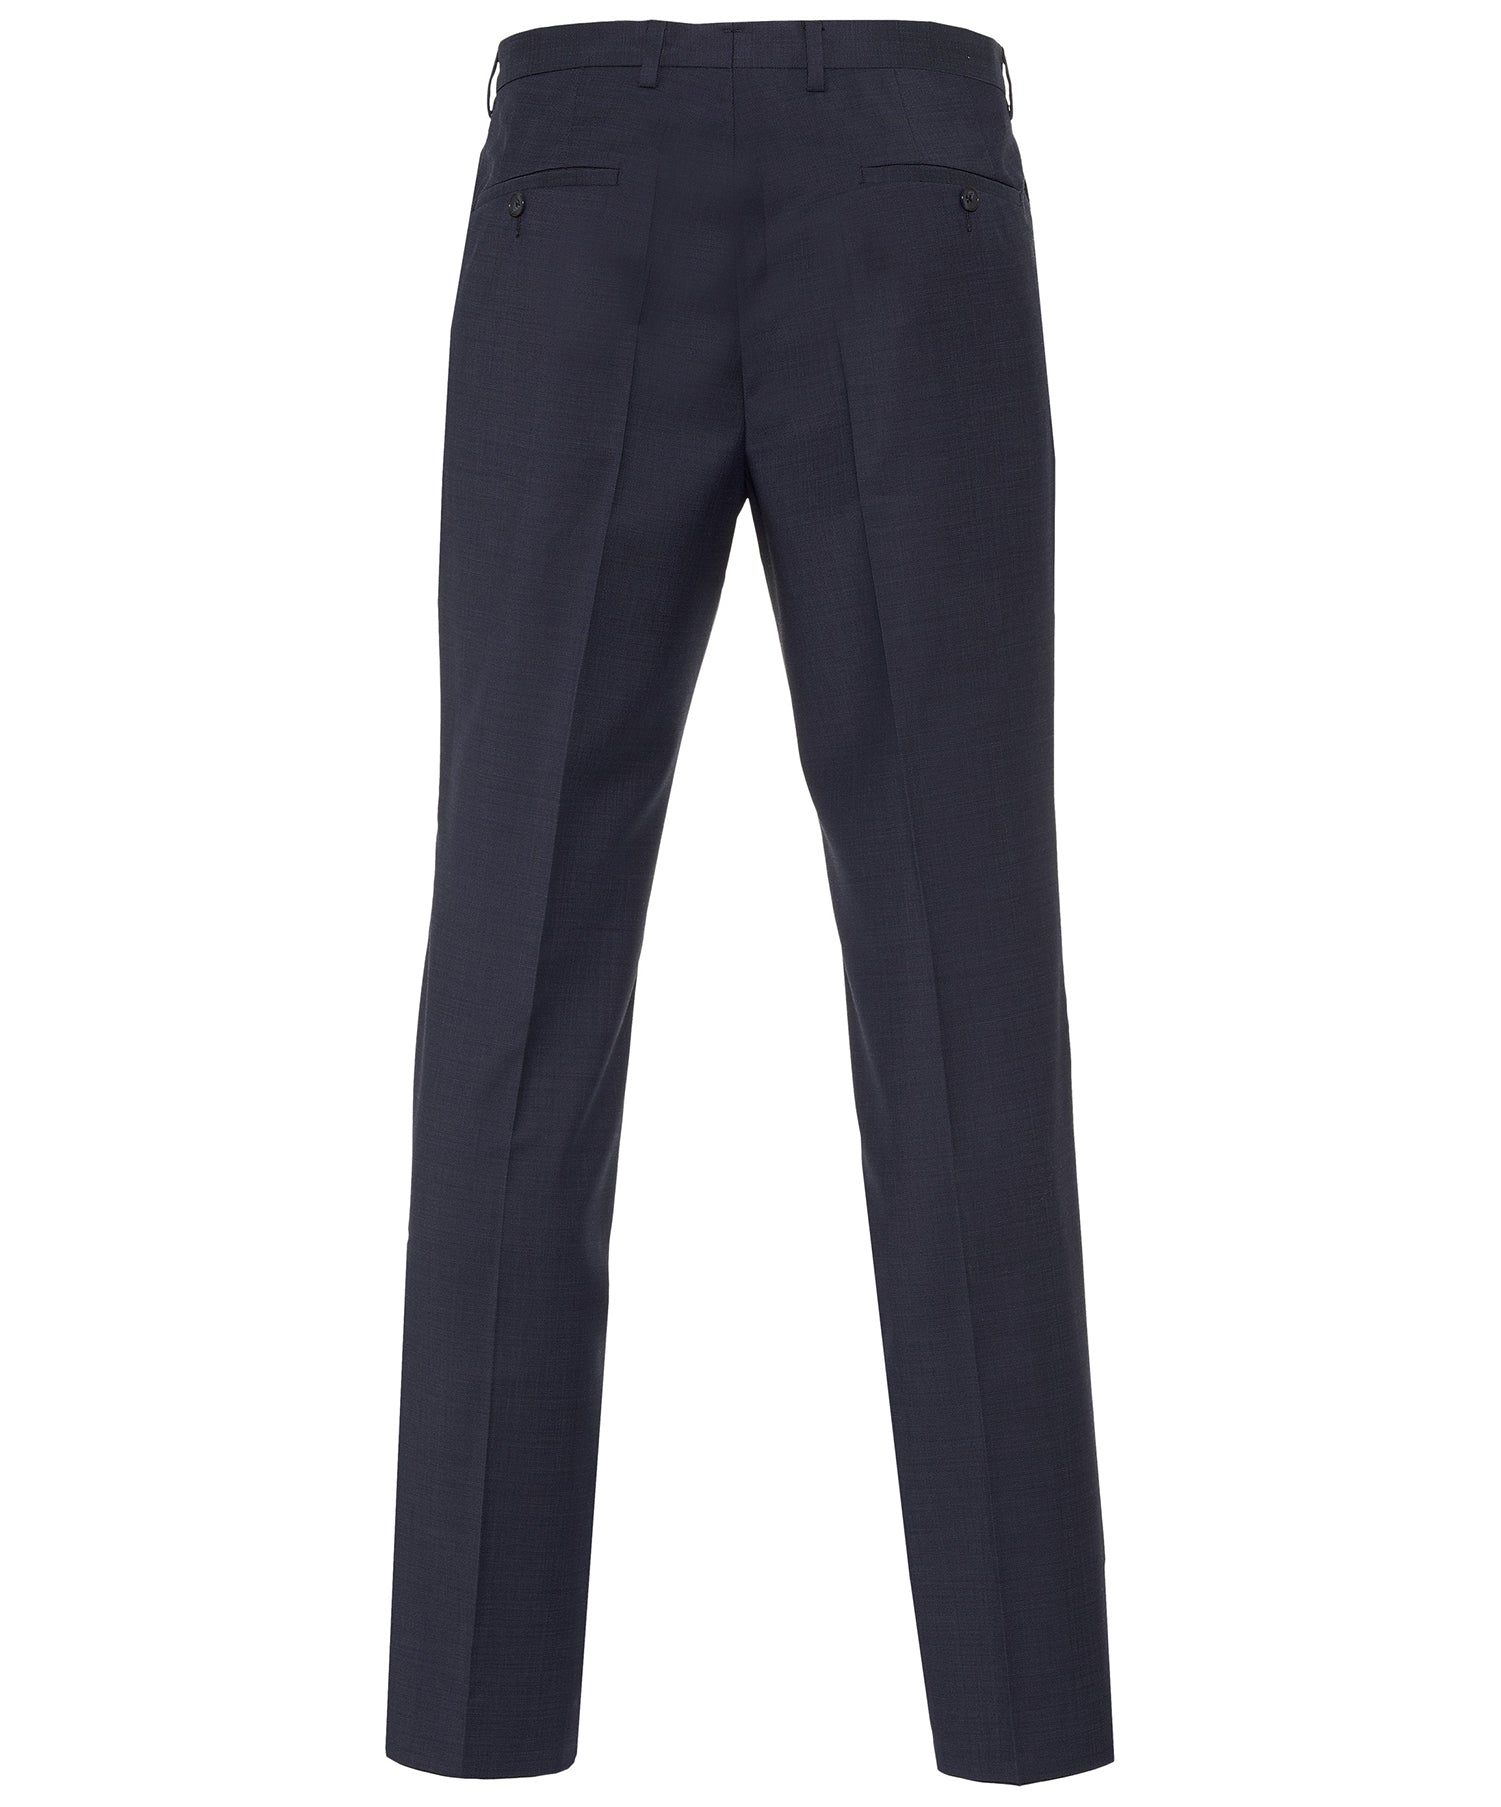 Buck Blue Shark Skin Effect S110's Dress Pant